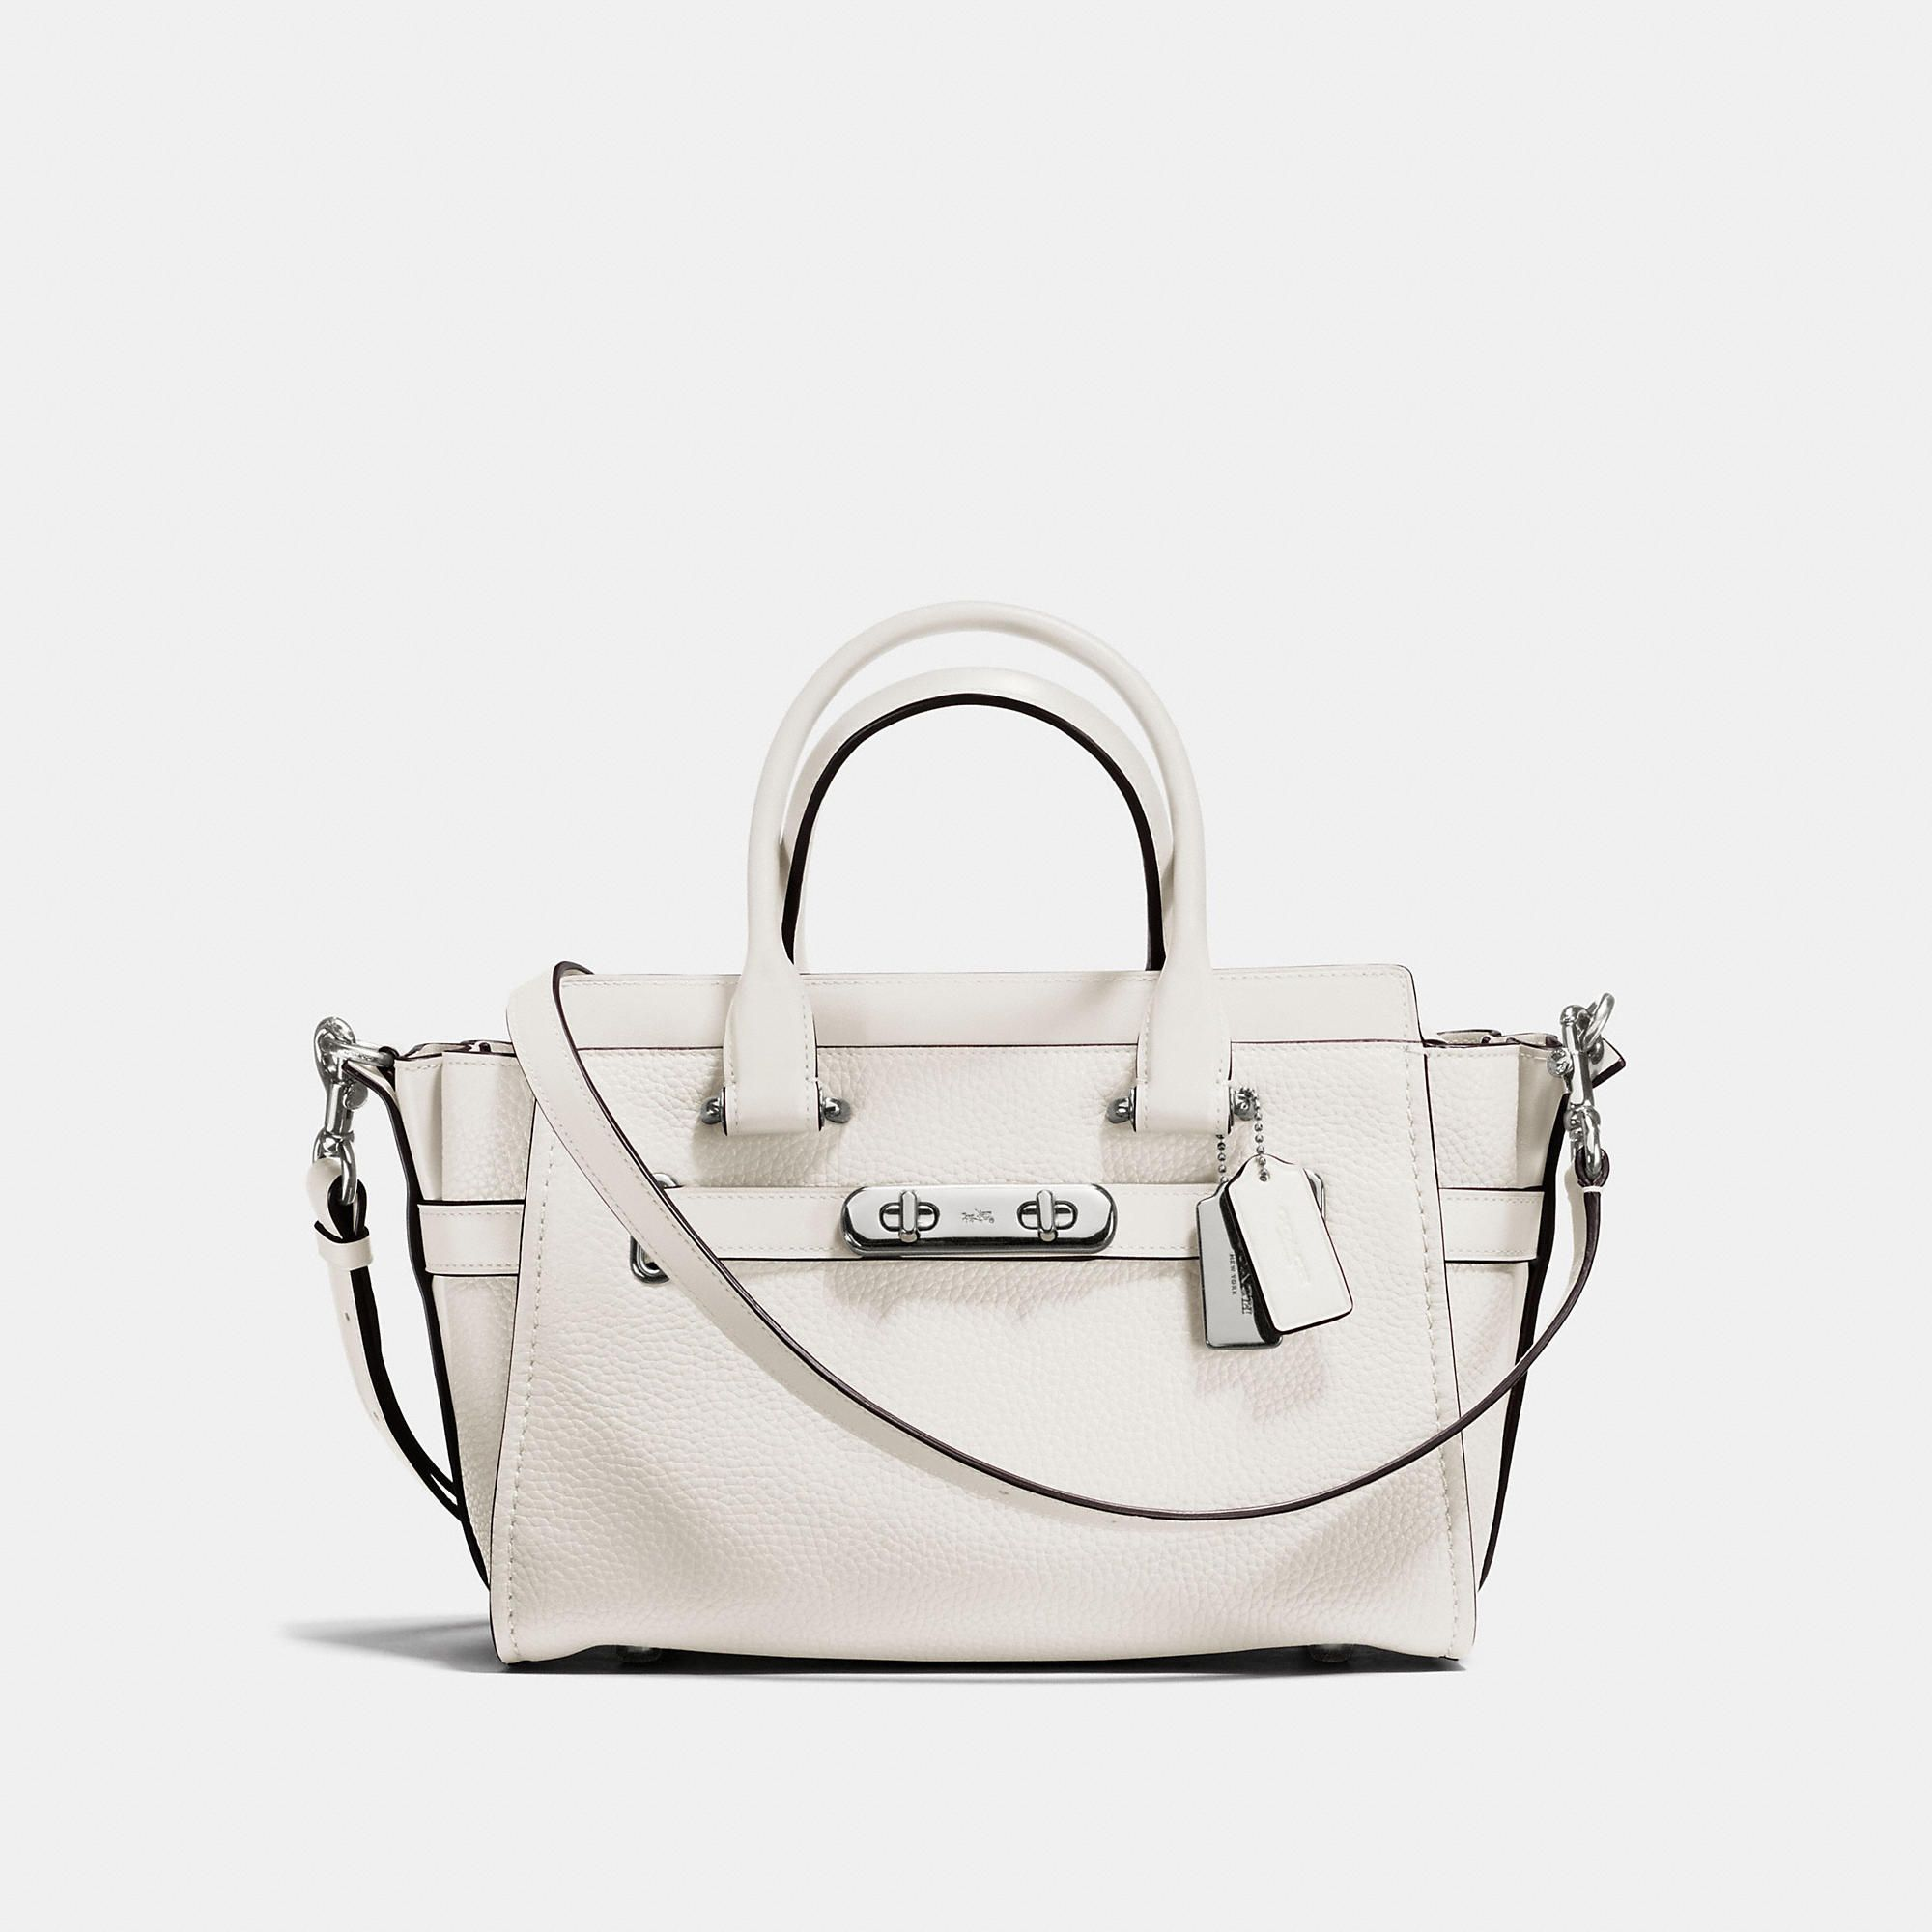 32ff4882f8 COACH .  coach  bags  shoulder bags  hand bags  leather  lining ...